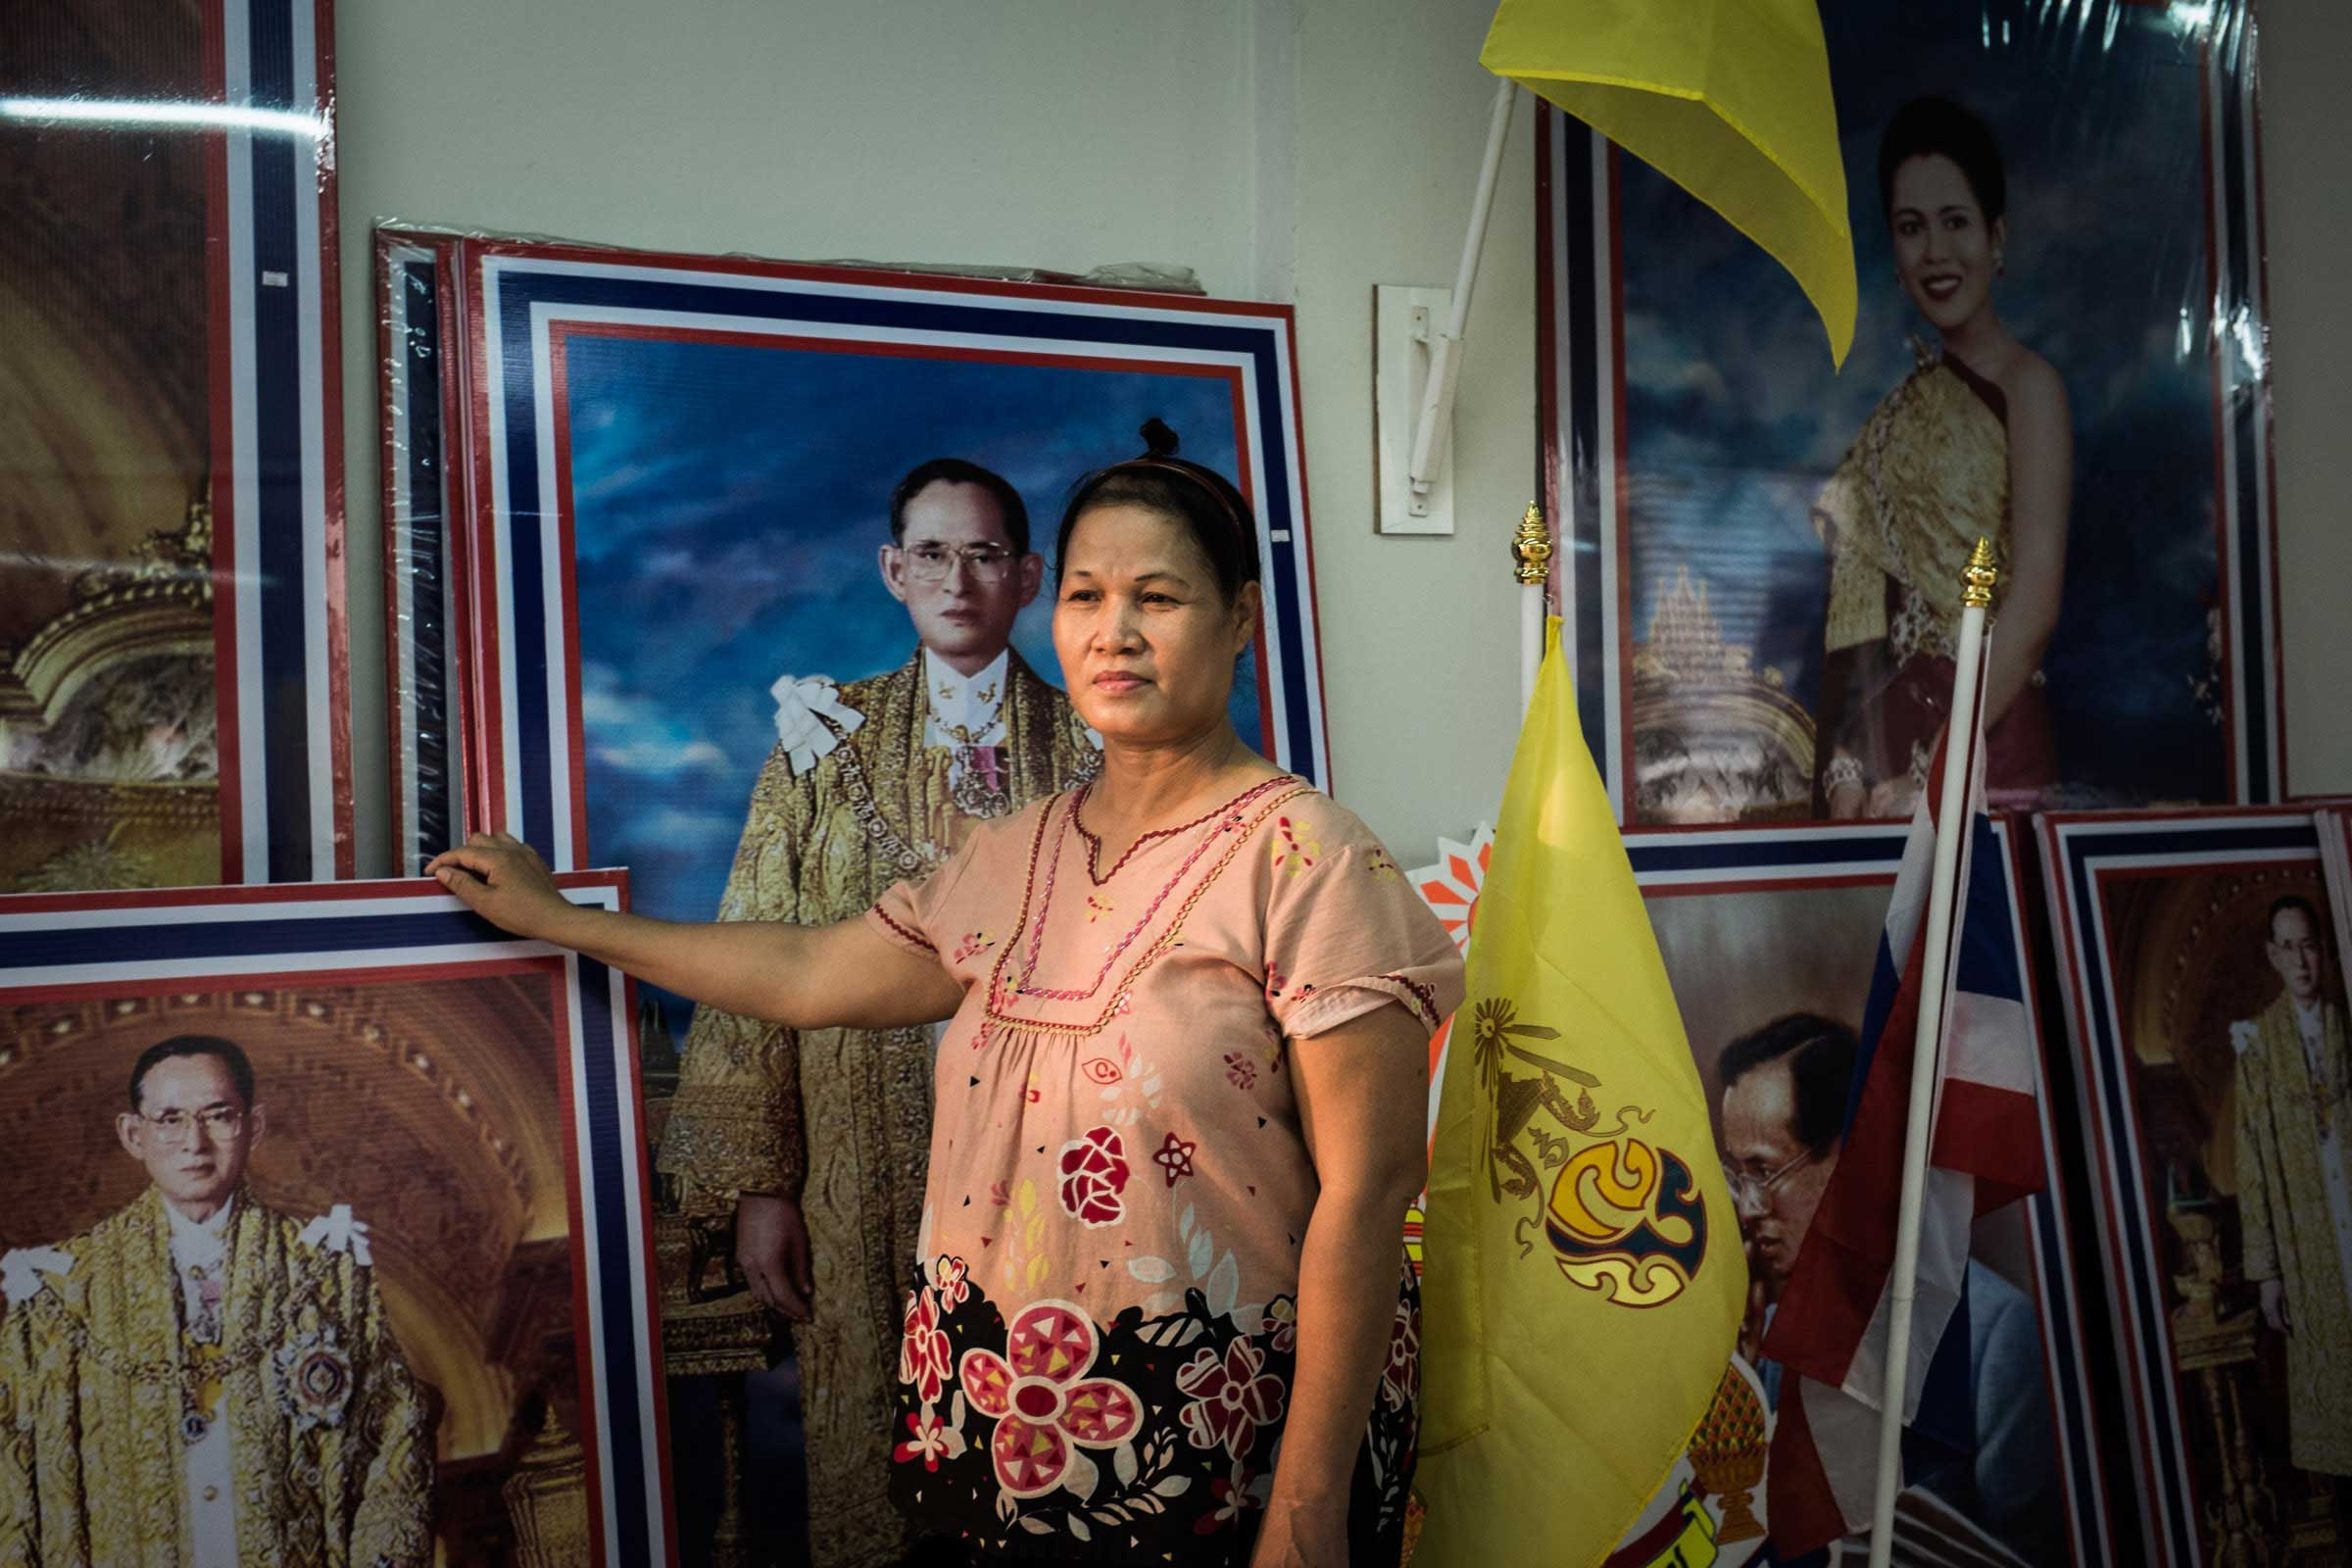 A shopkeeper poses before portraits of King Bhumibol in a store that sells only royal and national merchandise, Bangkok, Nov. 2014.